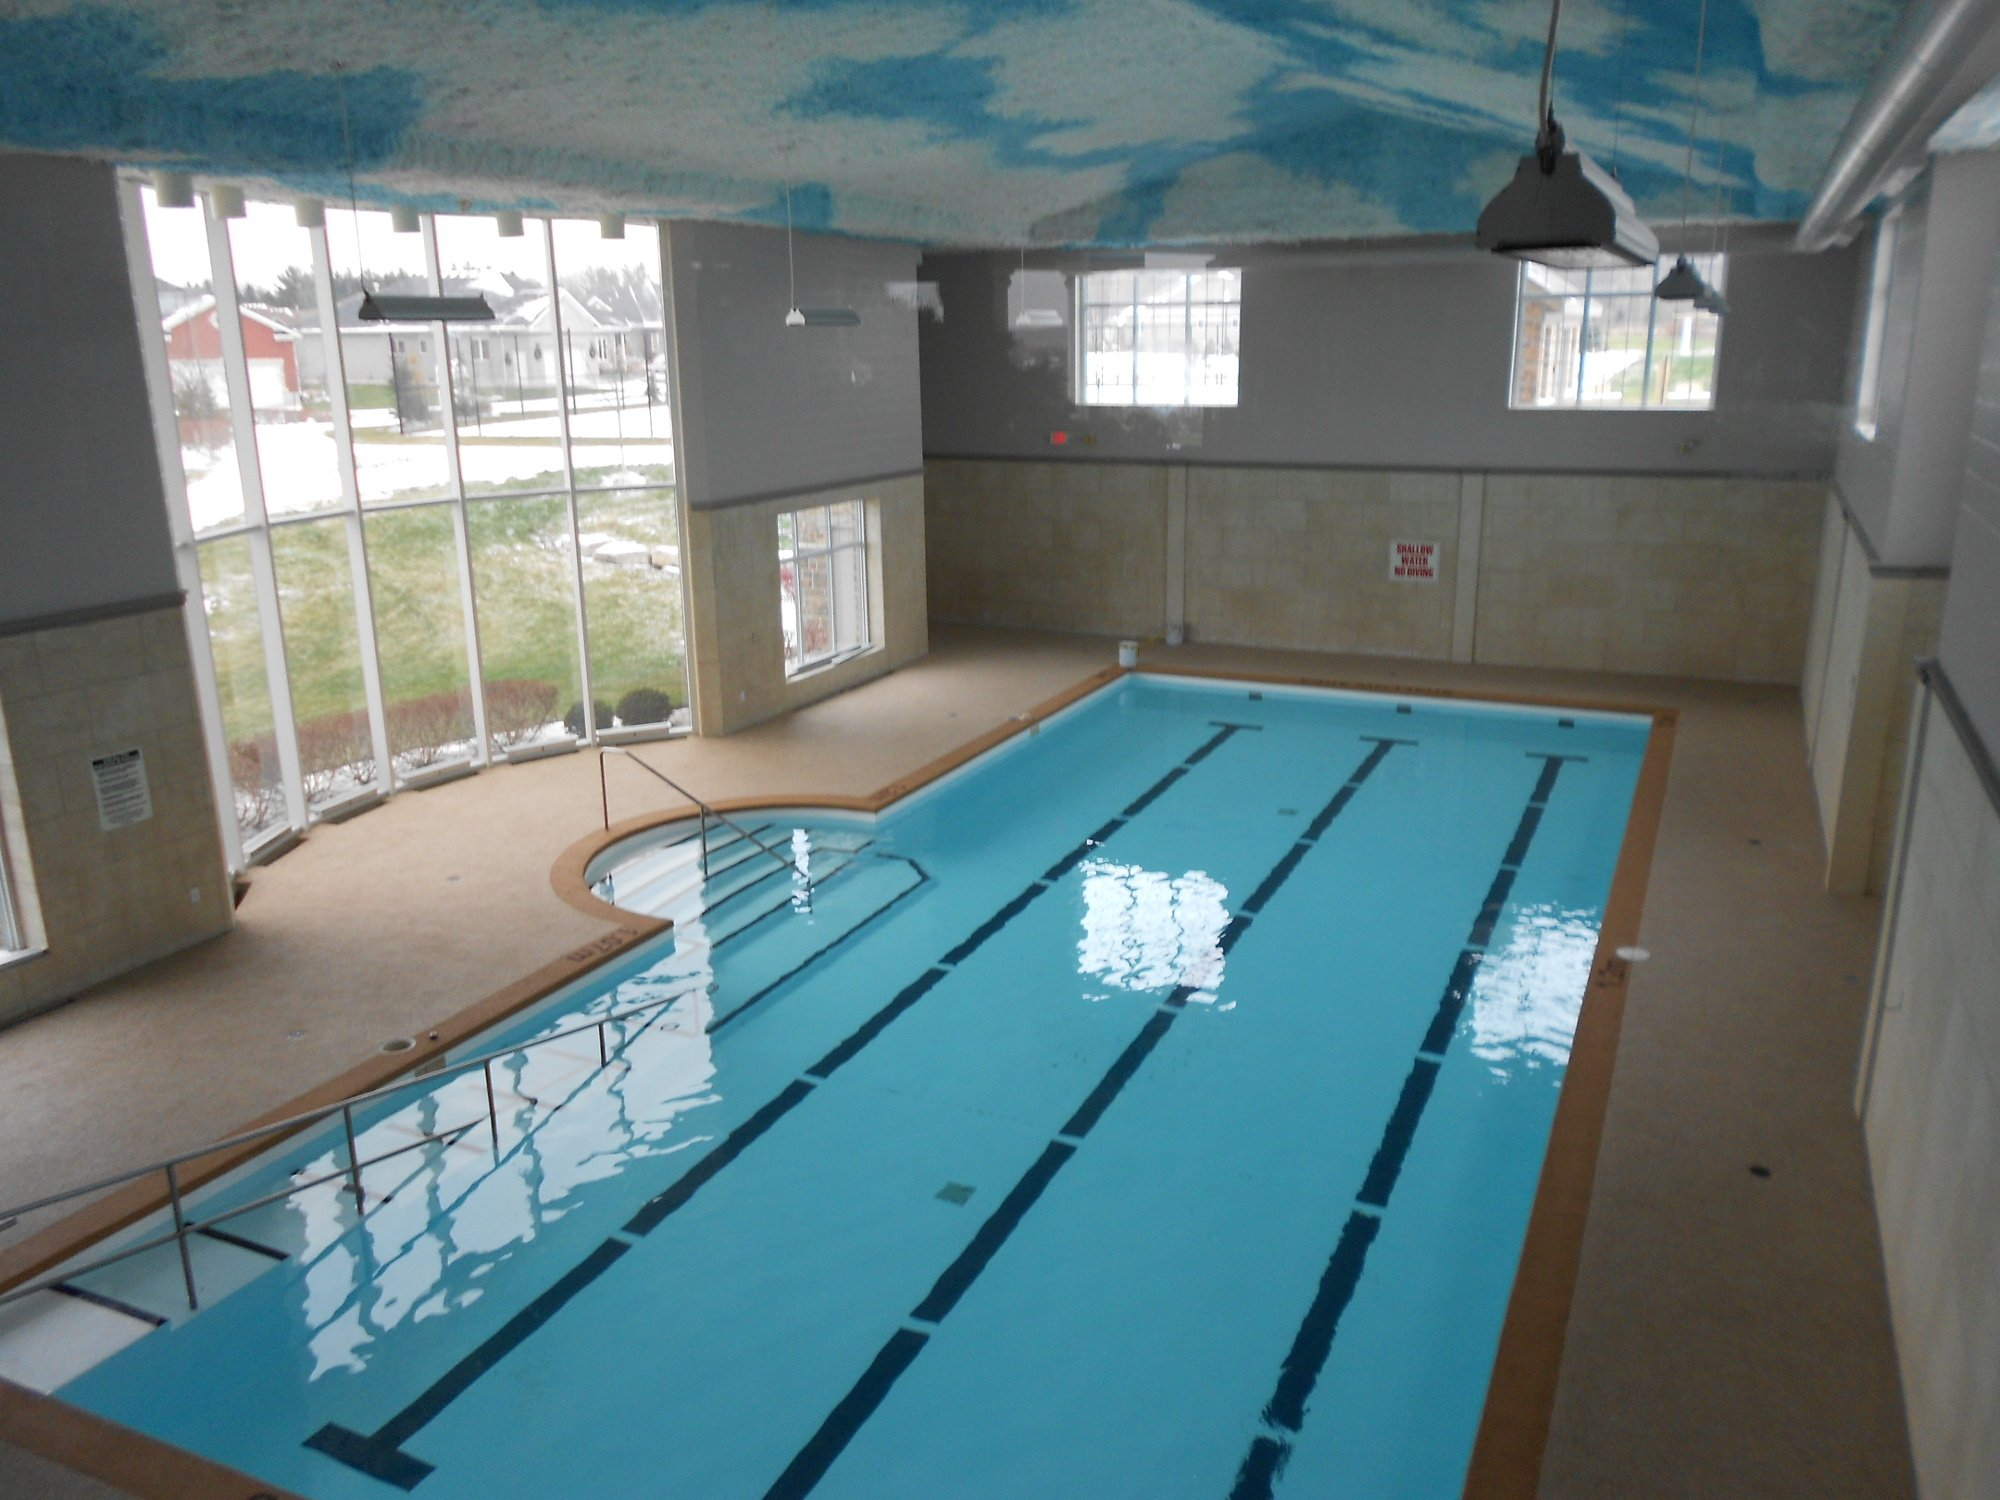 Indoor Pool Deck Rubber Surfacing